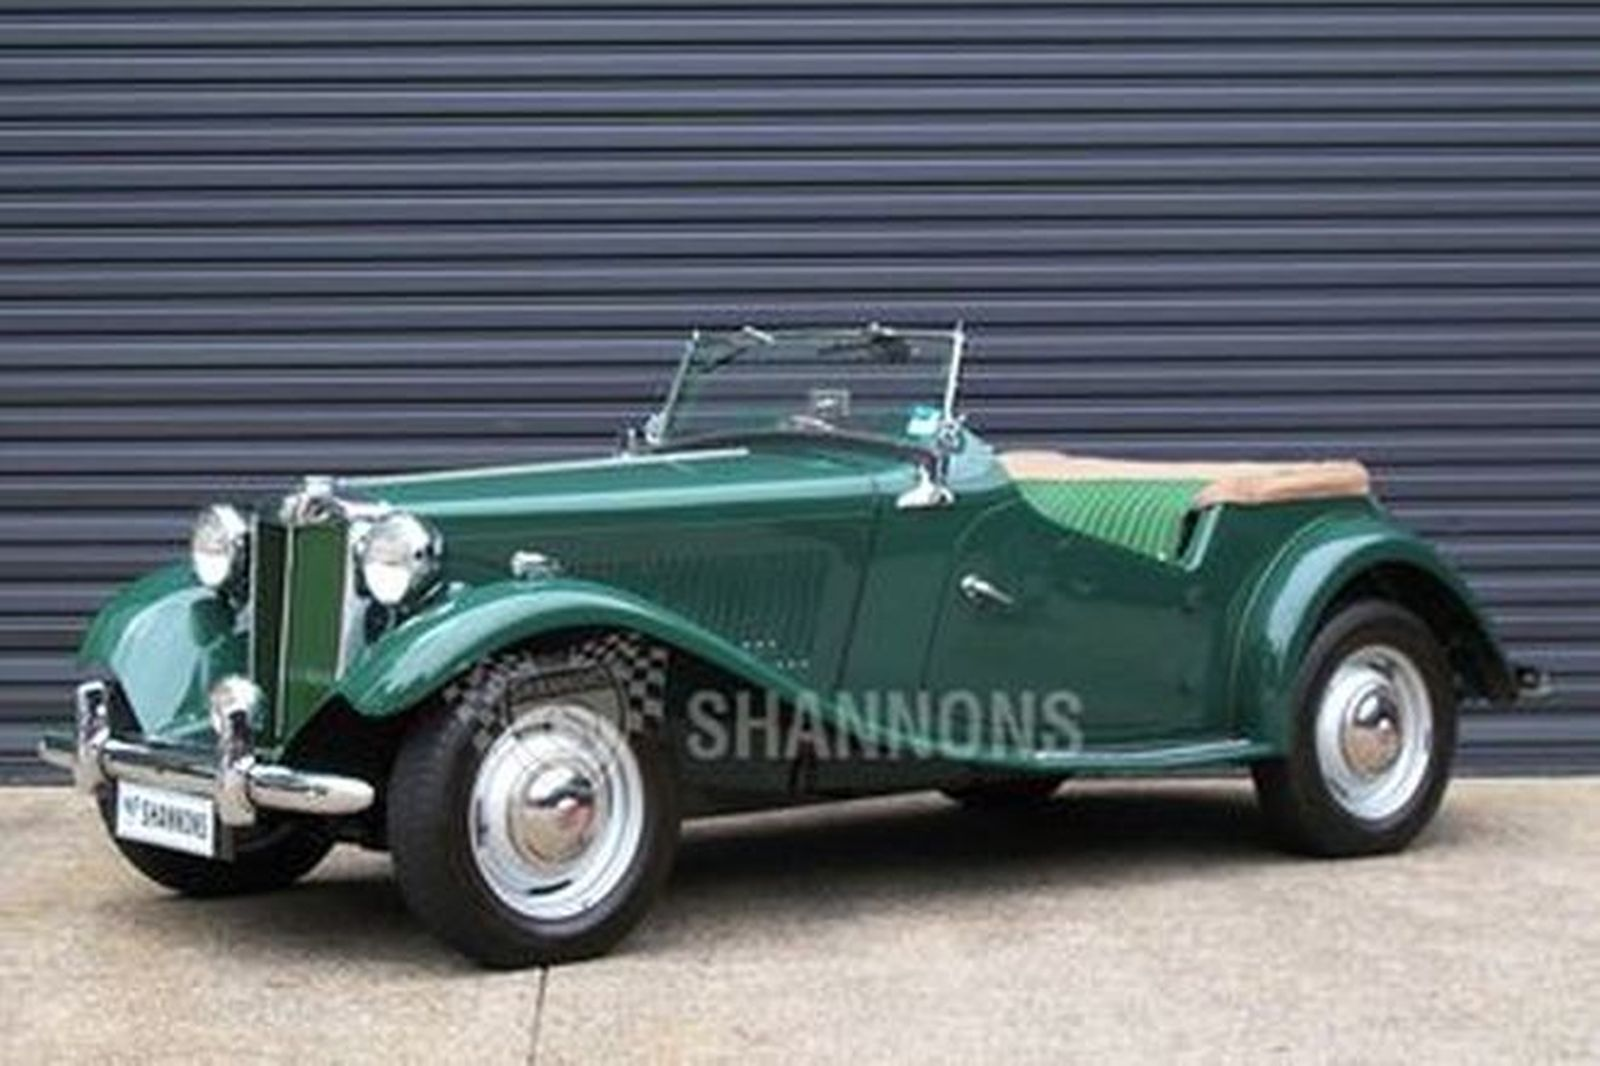 sold mgtd roadster auctions lot 11 shannons Cadillac V-16 mgtd roadster